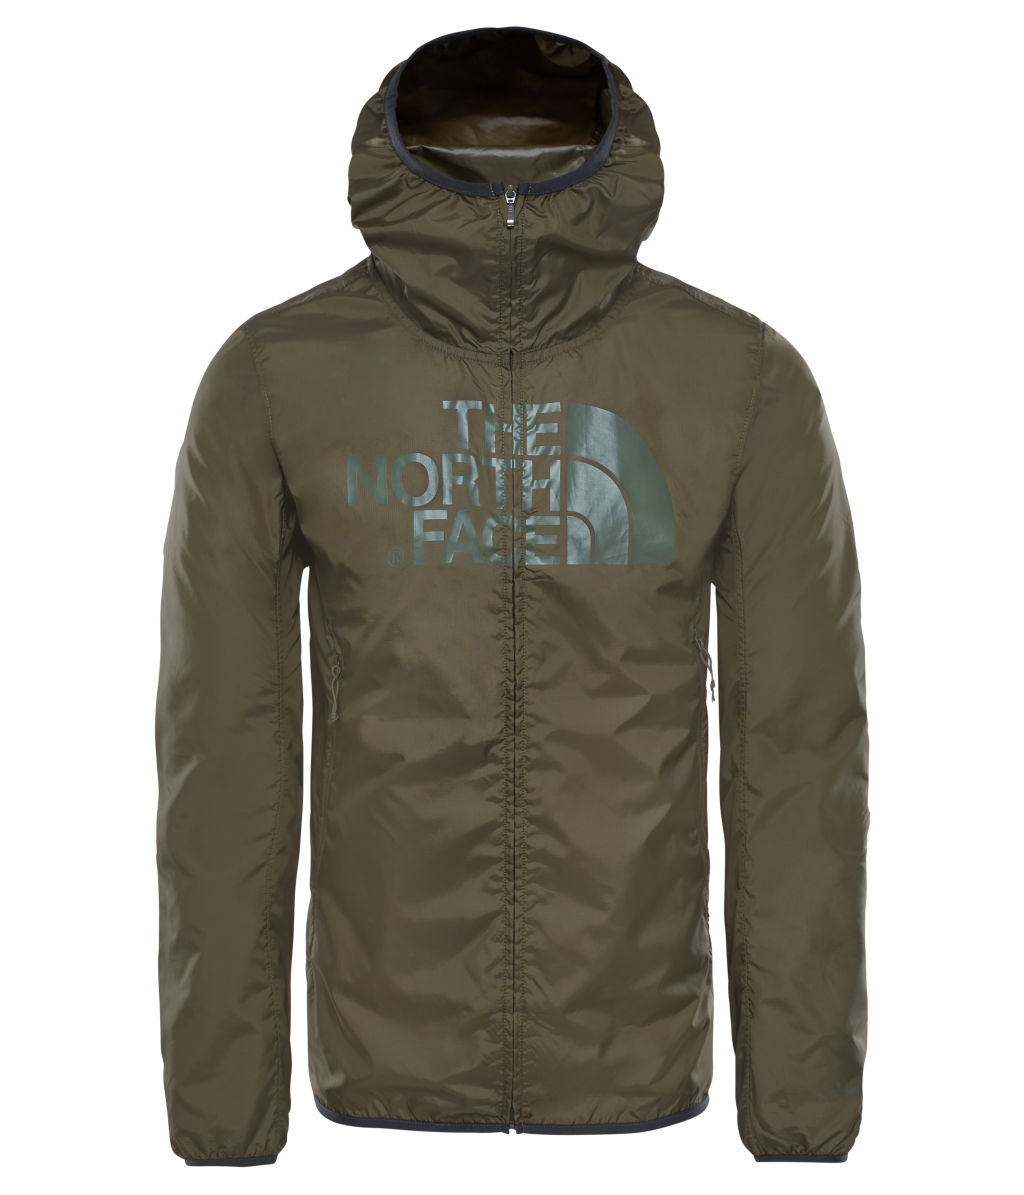 The North Face Drew Peak Windwall Jacket